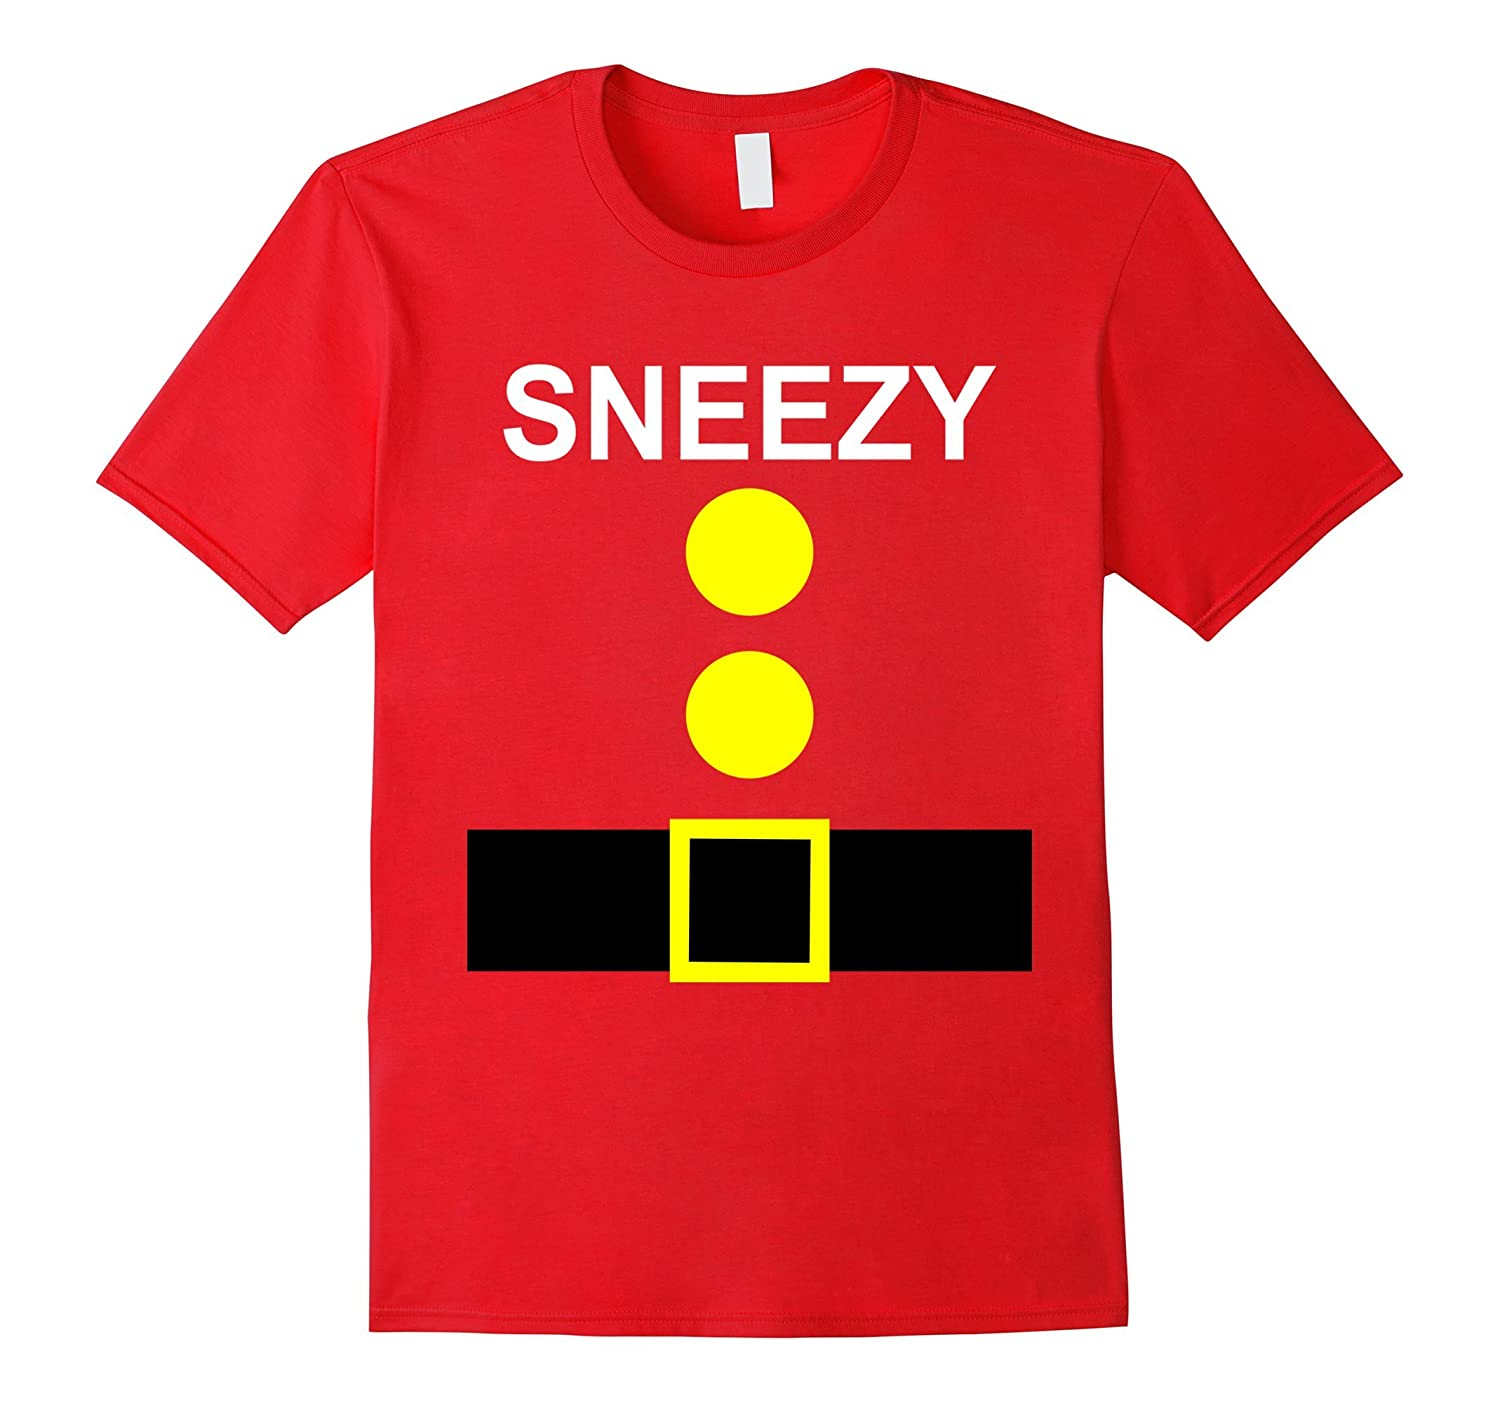 Halloween Group Costume Suit Shirt of Feeling Sneezy-T-Shirt